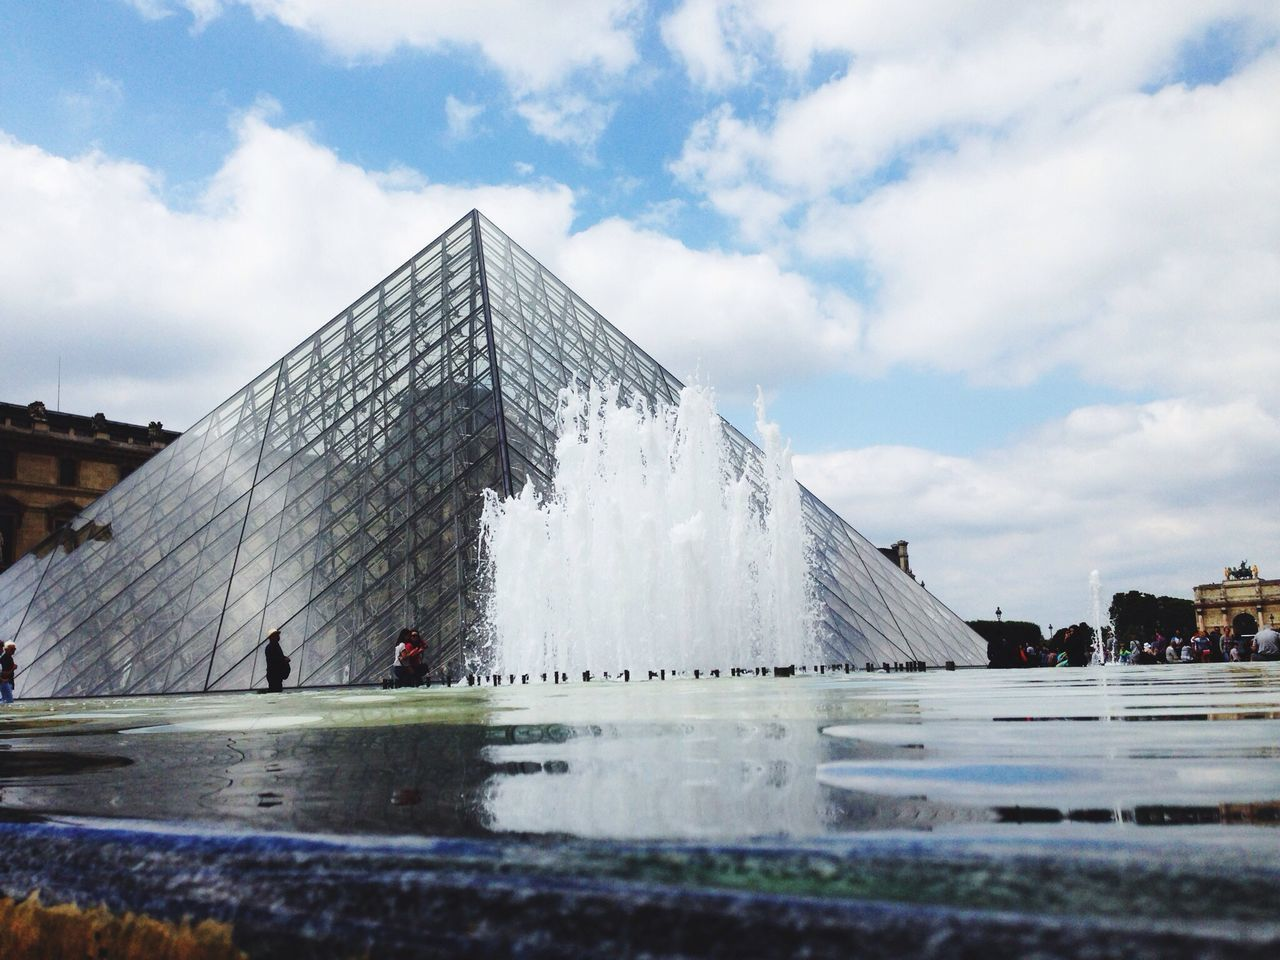 Fountain In Front Of Built Structure Against Clouds